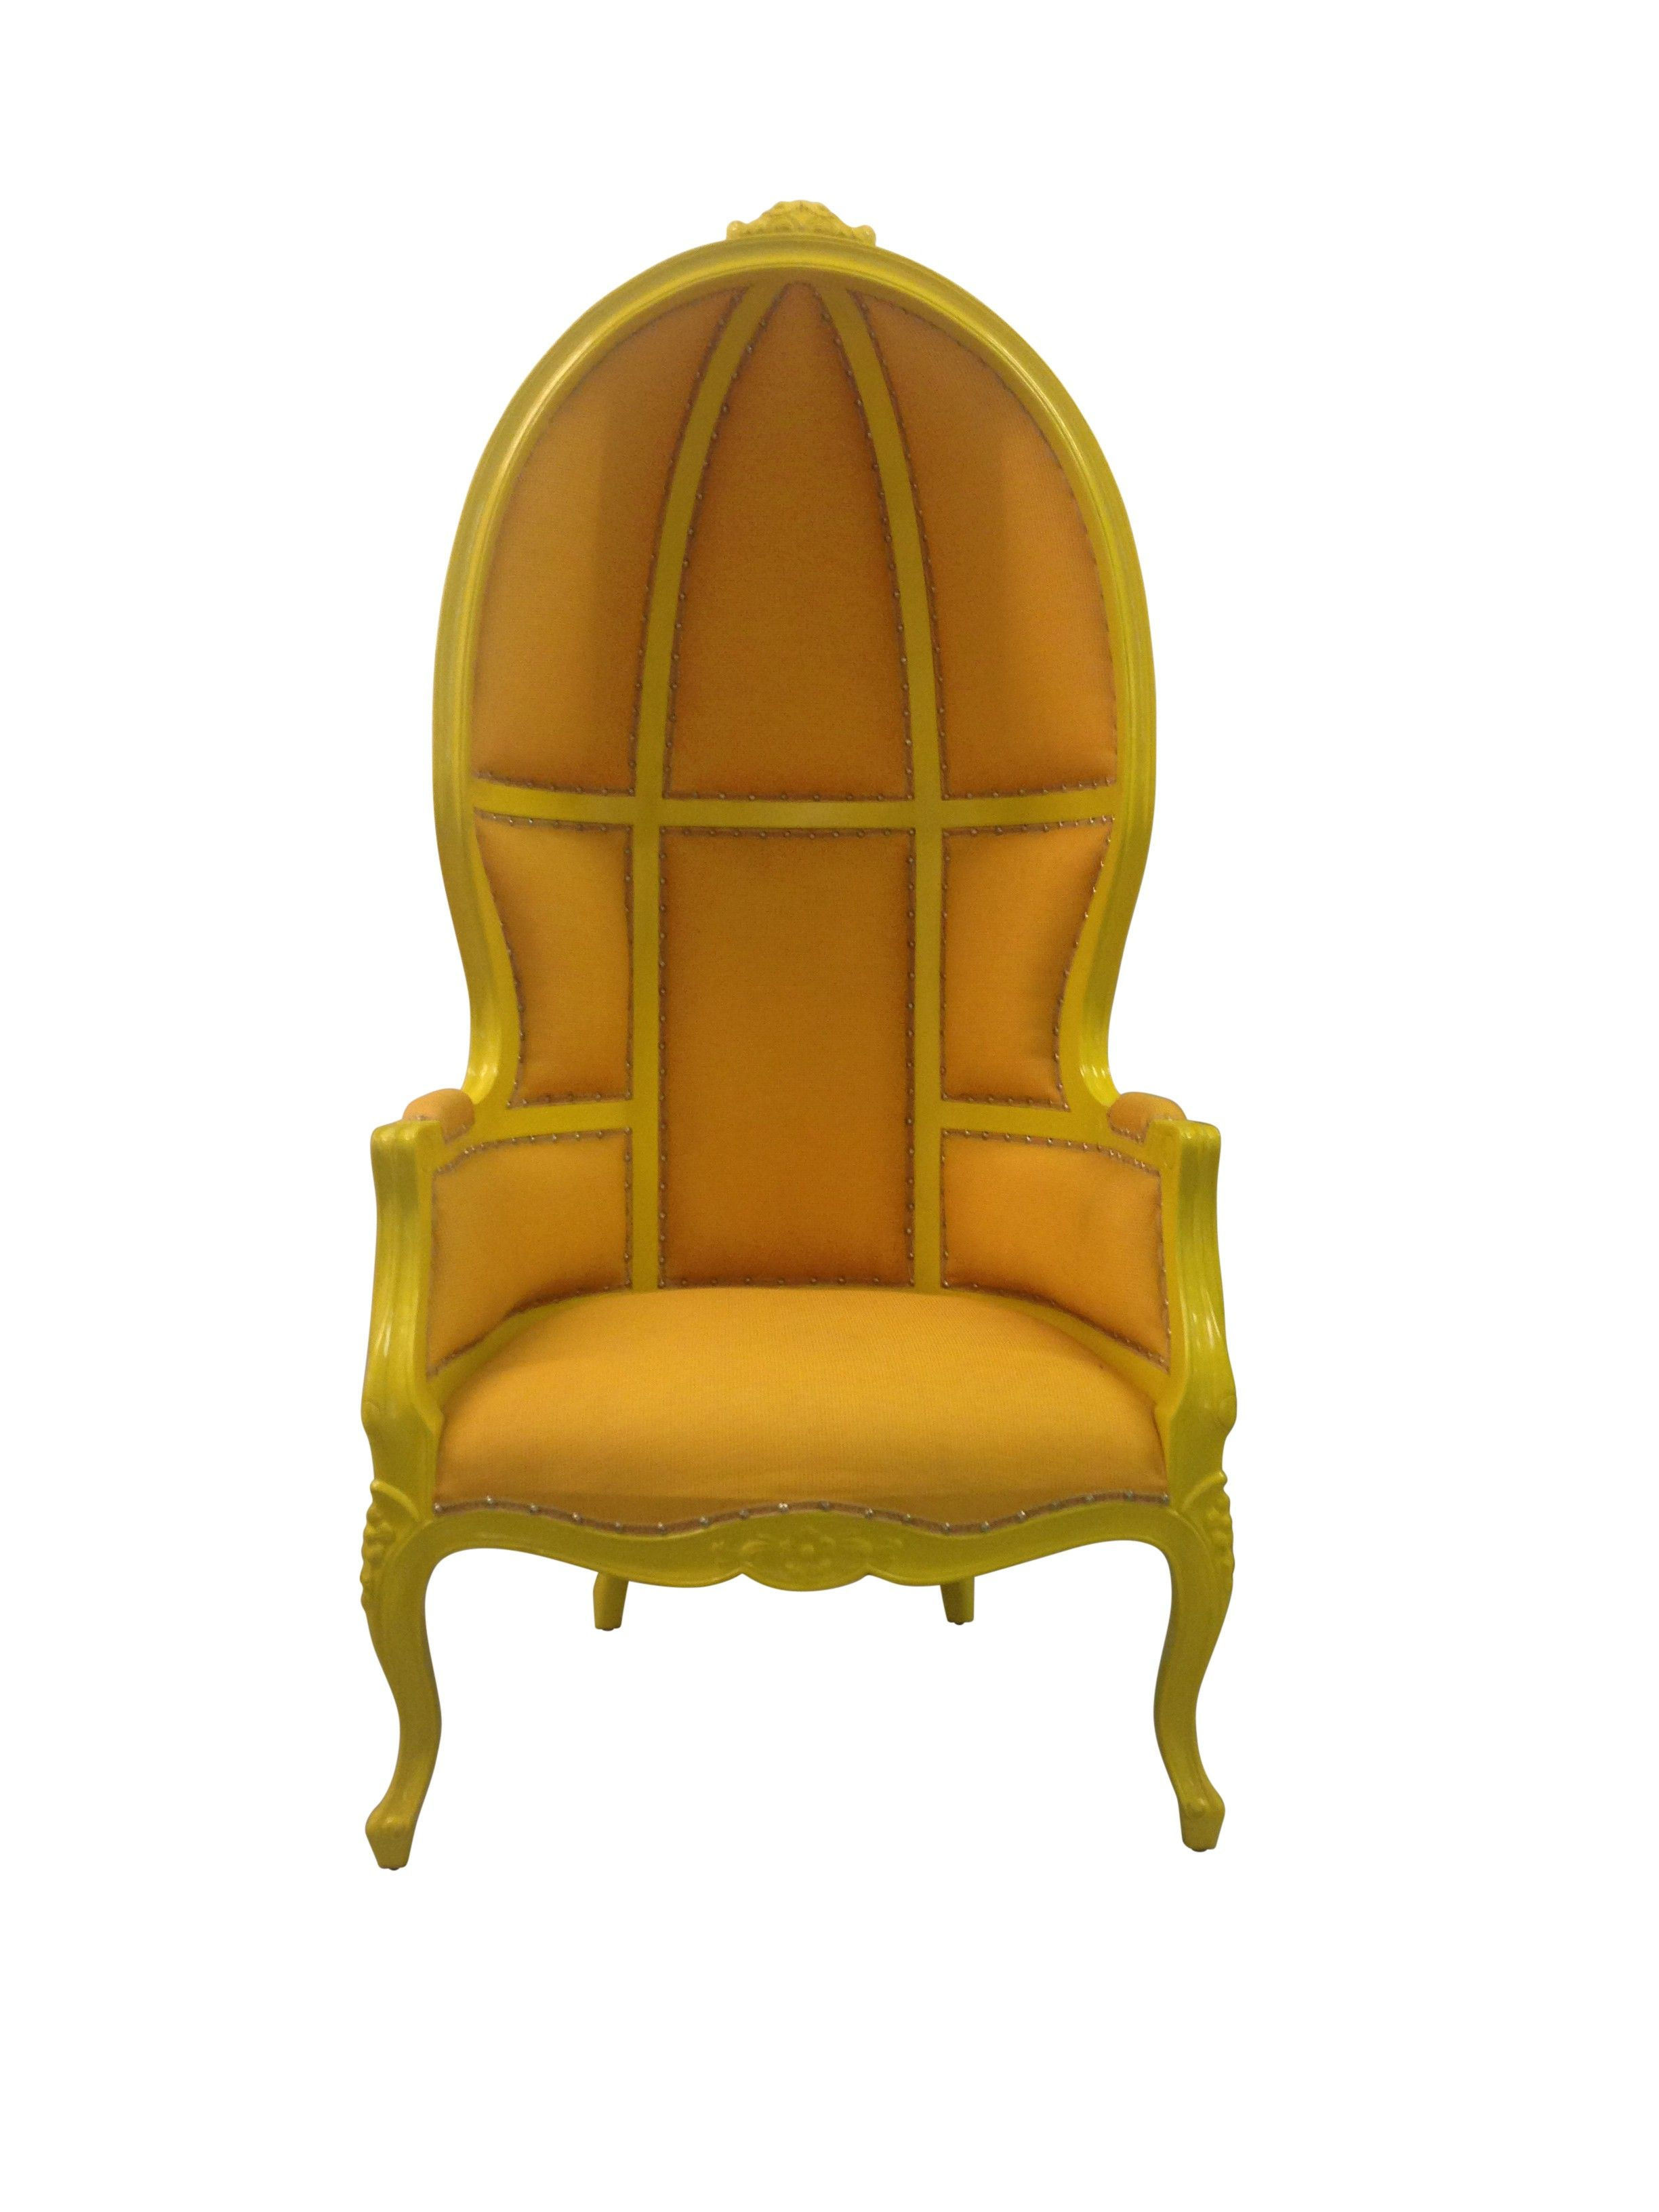 French Canopy Chair Stool Width Yellow Chairs Hood Pinterest